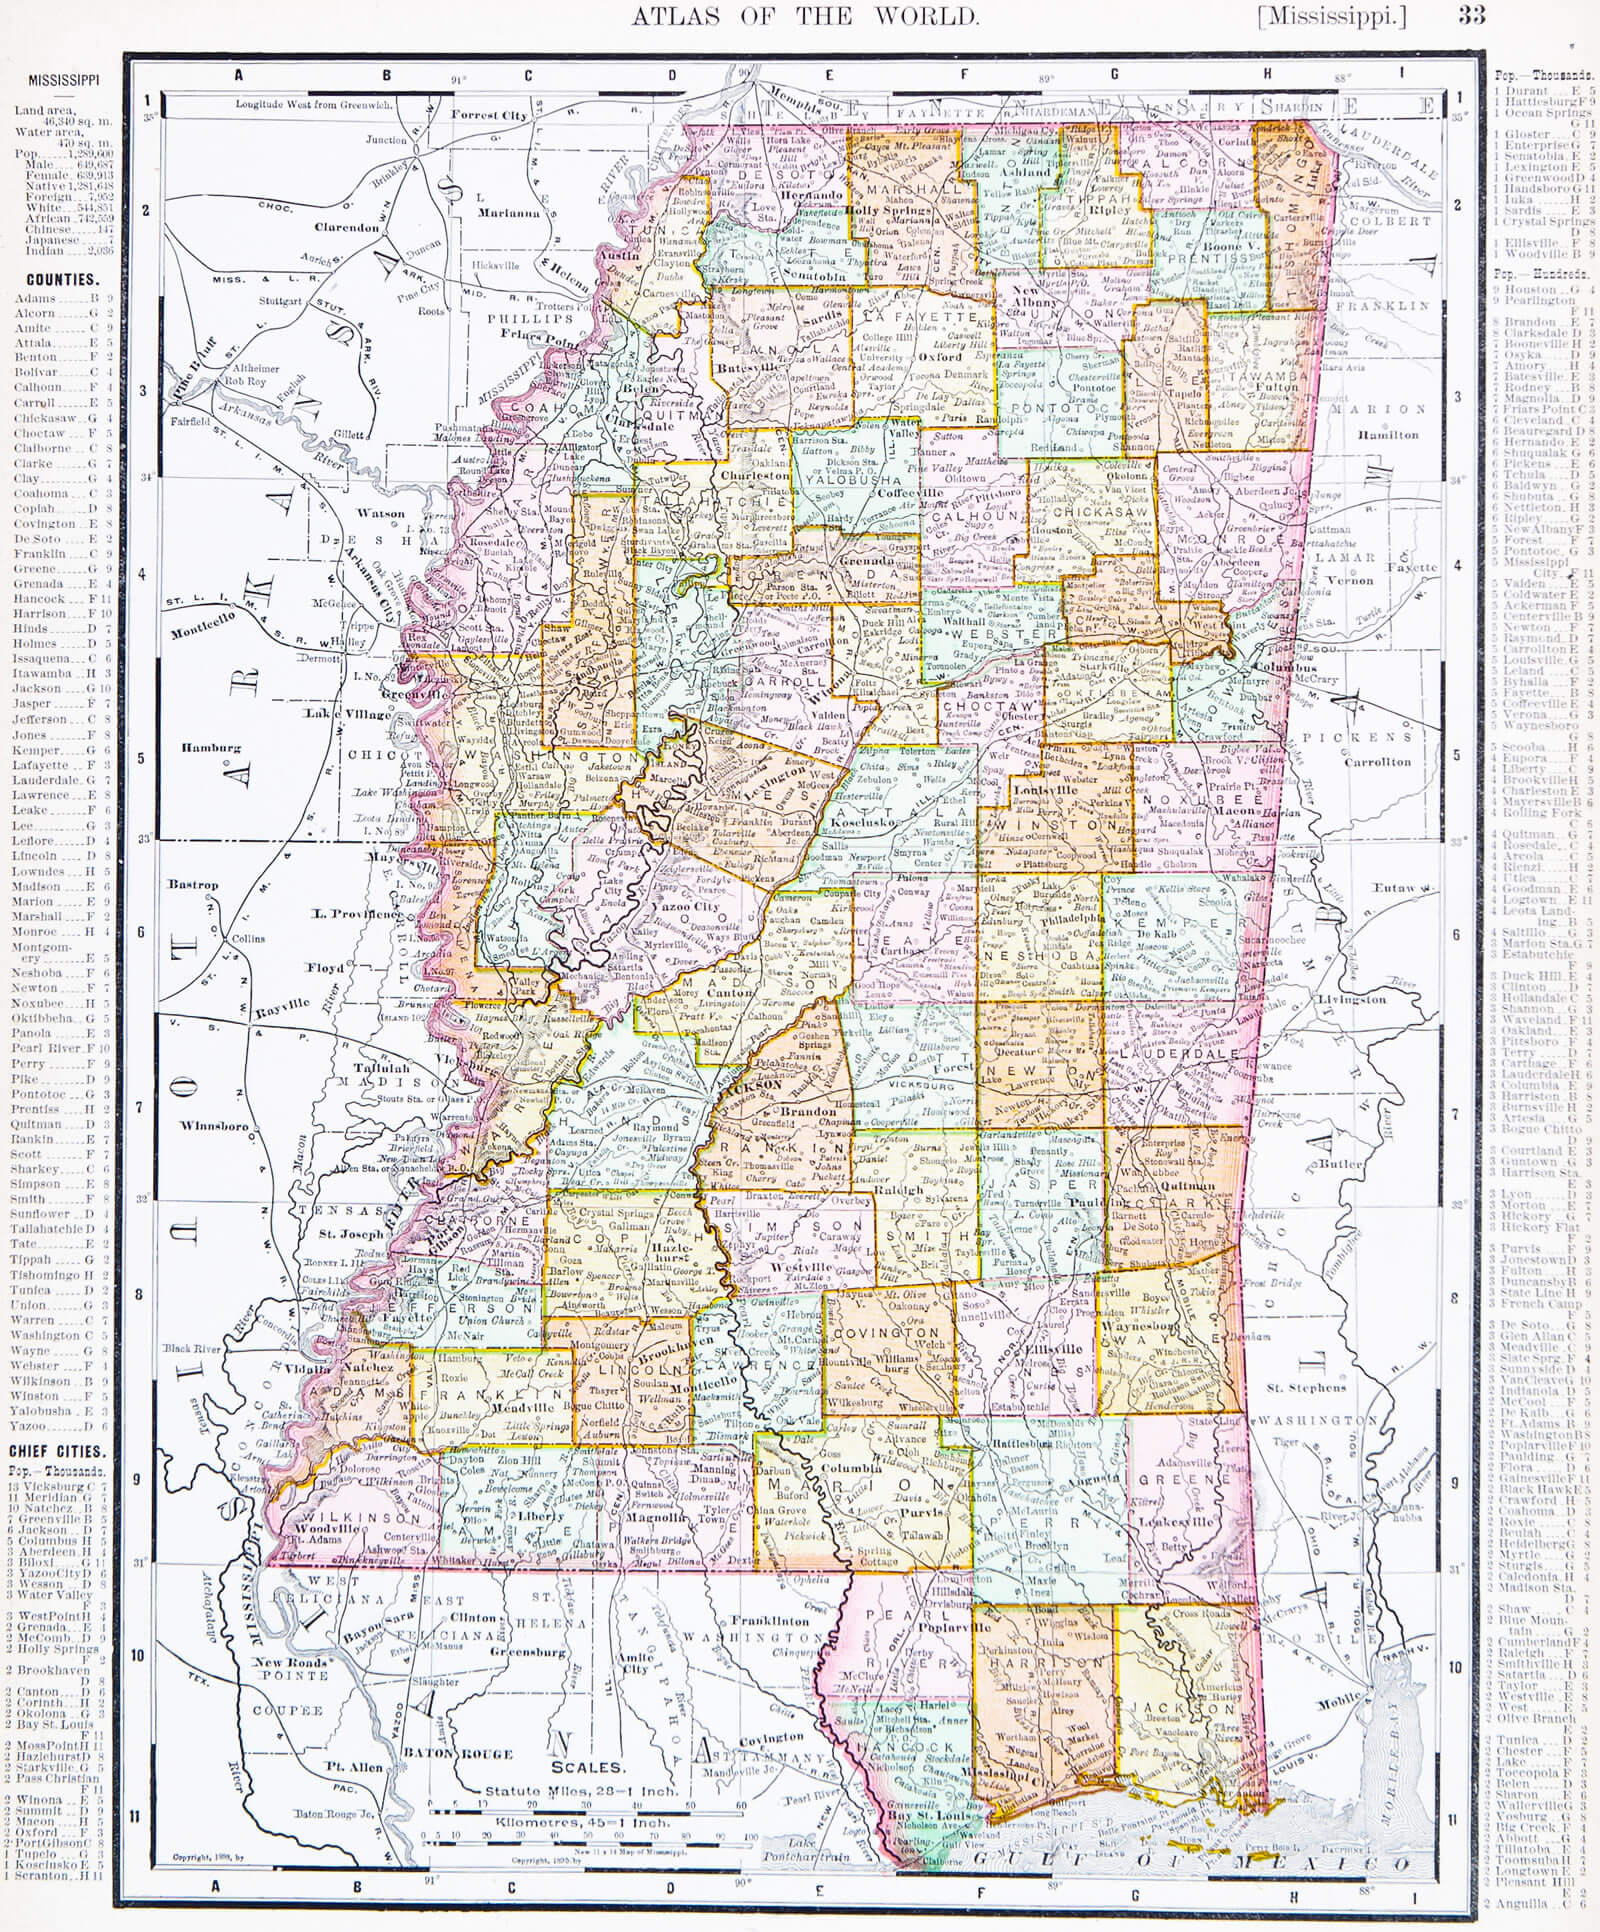 Mississippi Map - Guide of the World on louisiana's map, maryland's map, kentucky's map, maine's map, oklahoma's map, mississippi regions map, ms road map, georgia's map, michigan's map, indiana's map, missouri's map, new mexico's map, mississippi county map, mississippi state map, new jersey's map,